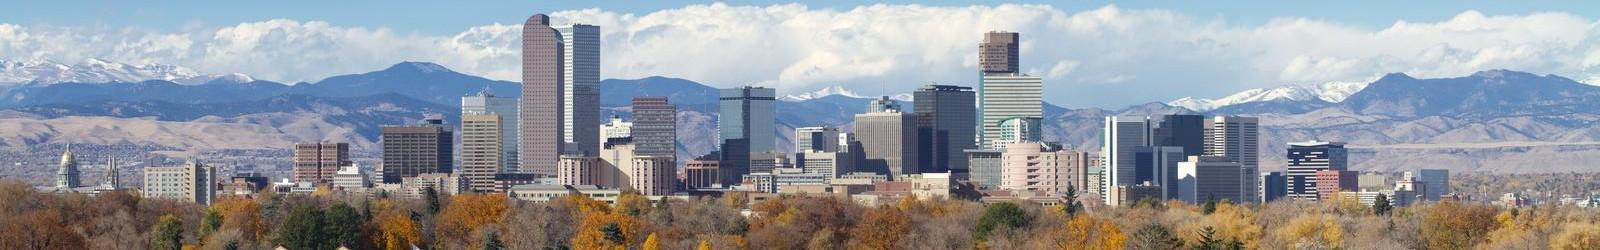 Depression therapists in Denver, Colorado